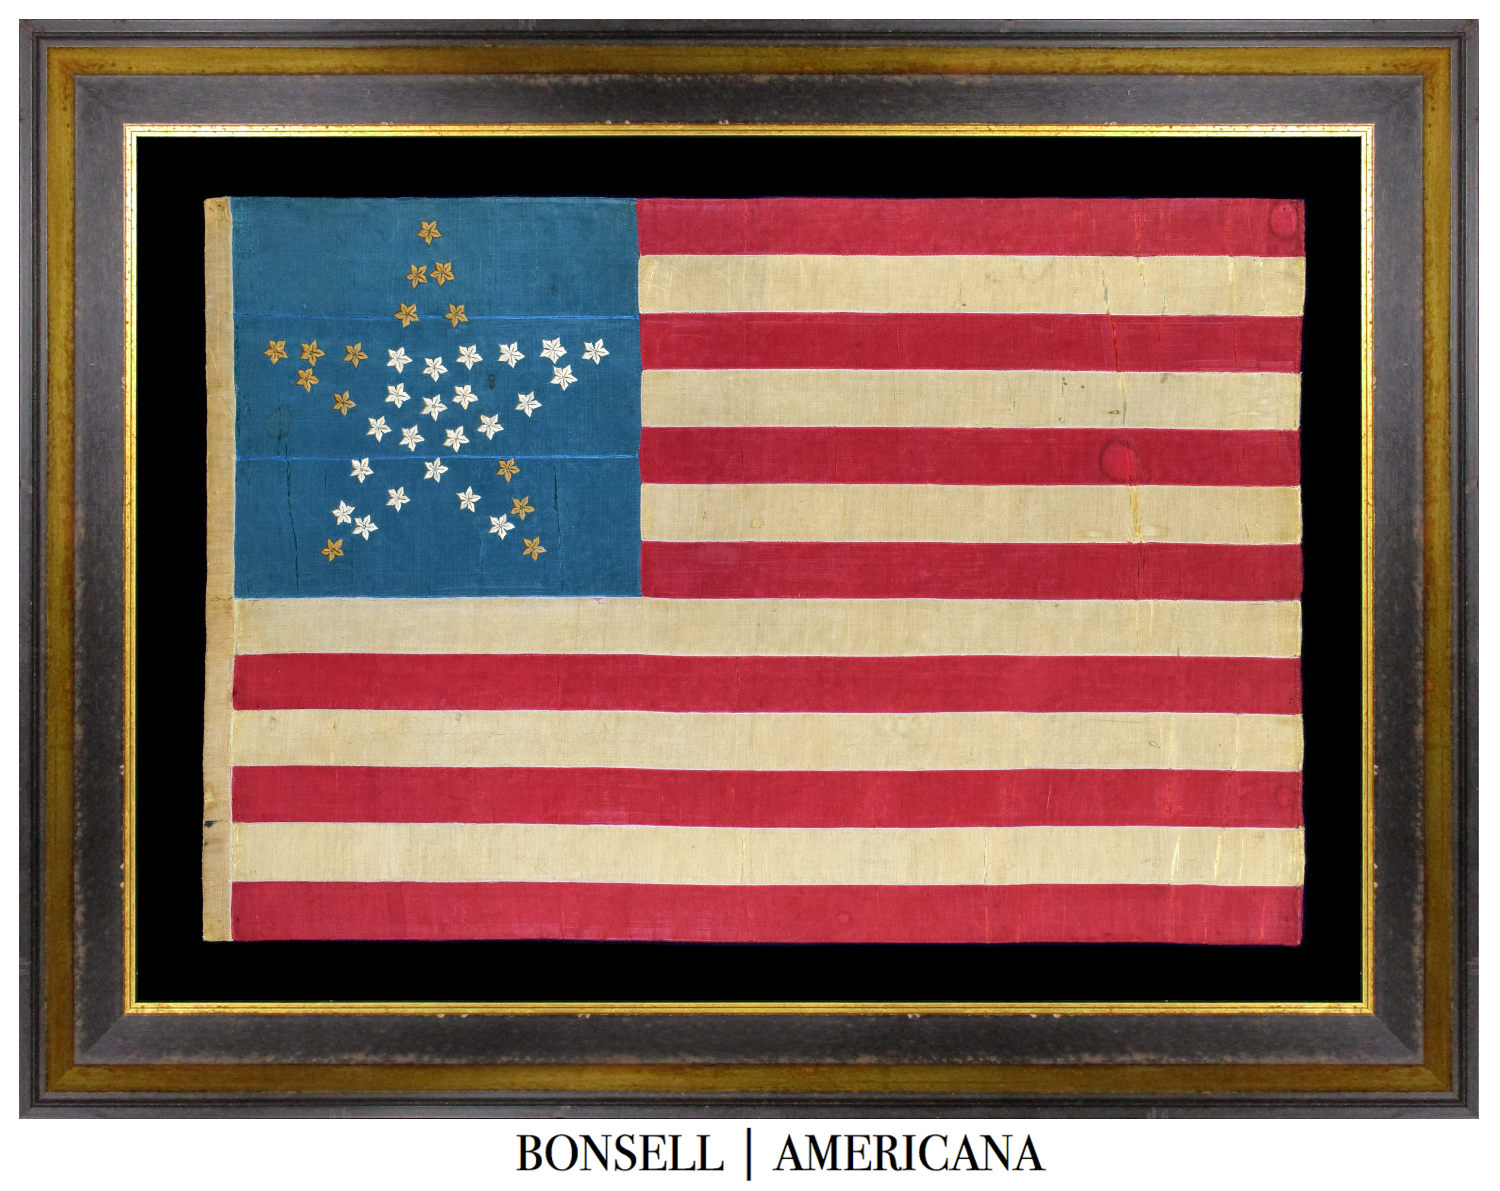 Antique Flag with Great Star Pattern